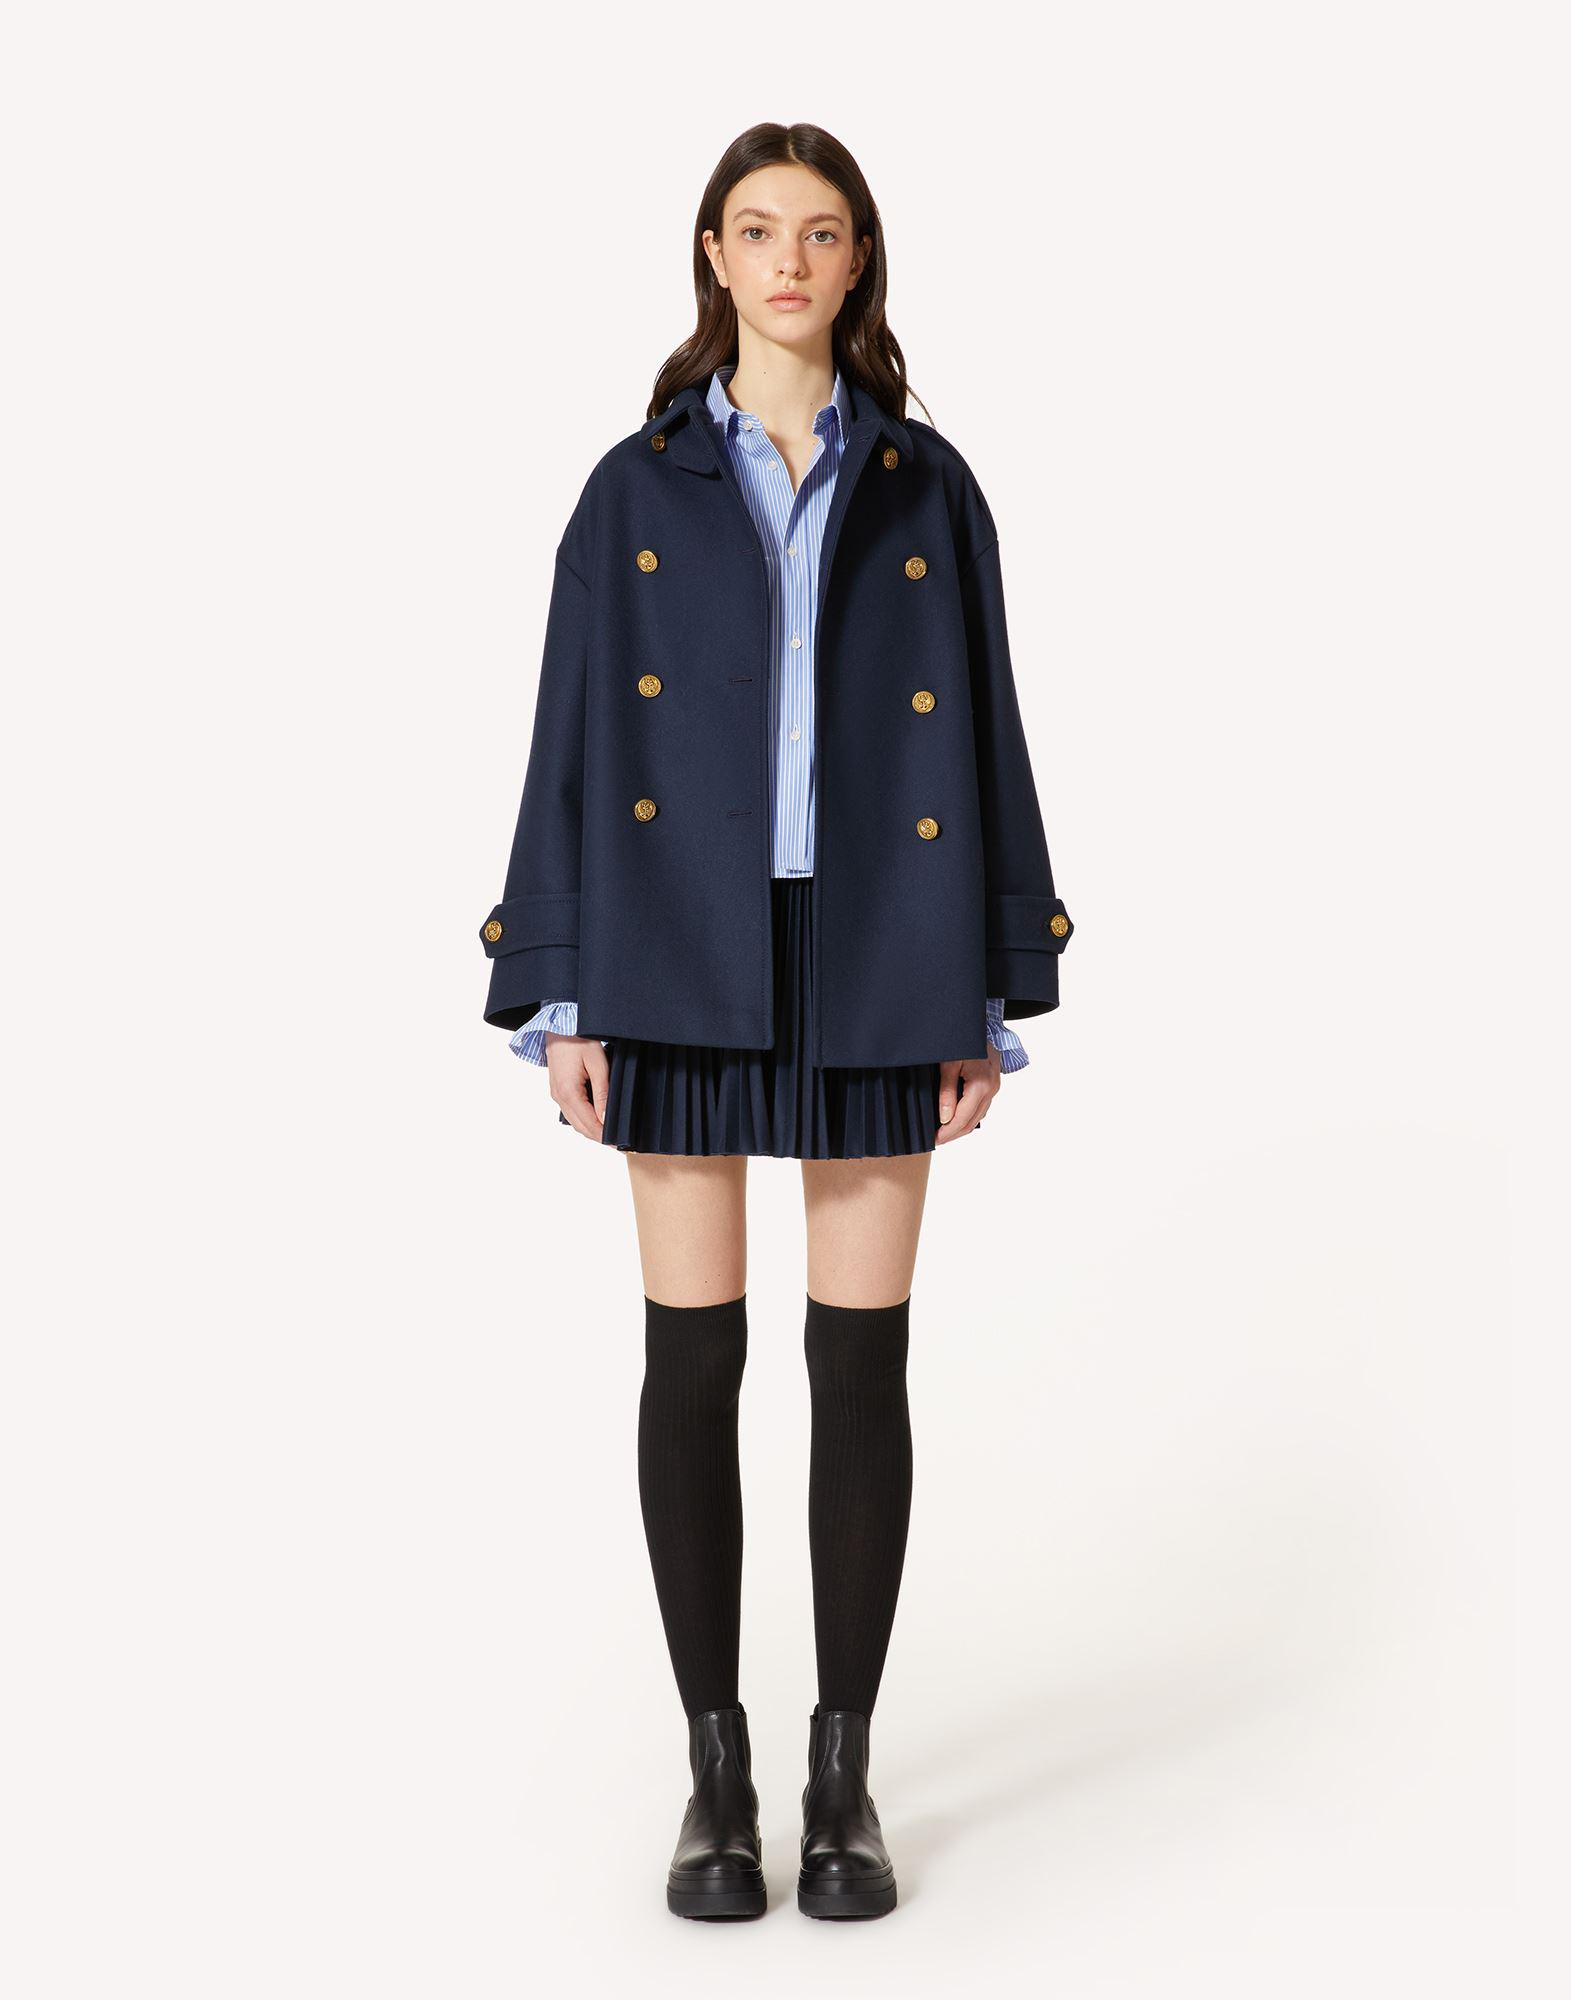 FELT WOOL PEA COAT WITH MARINE BUTTONS